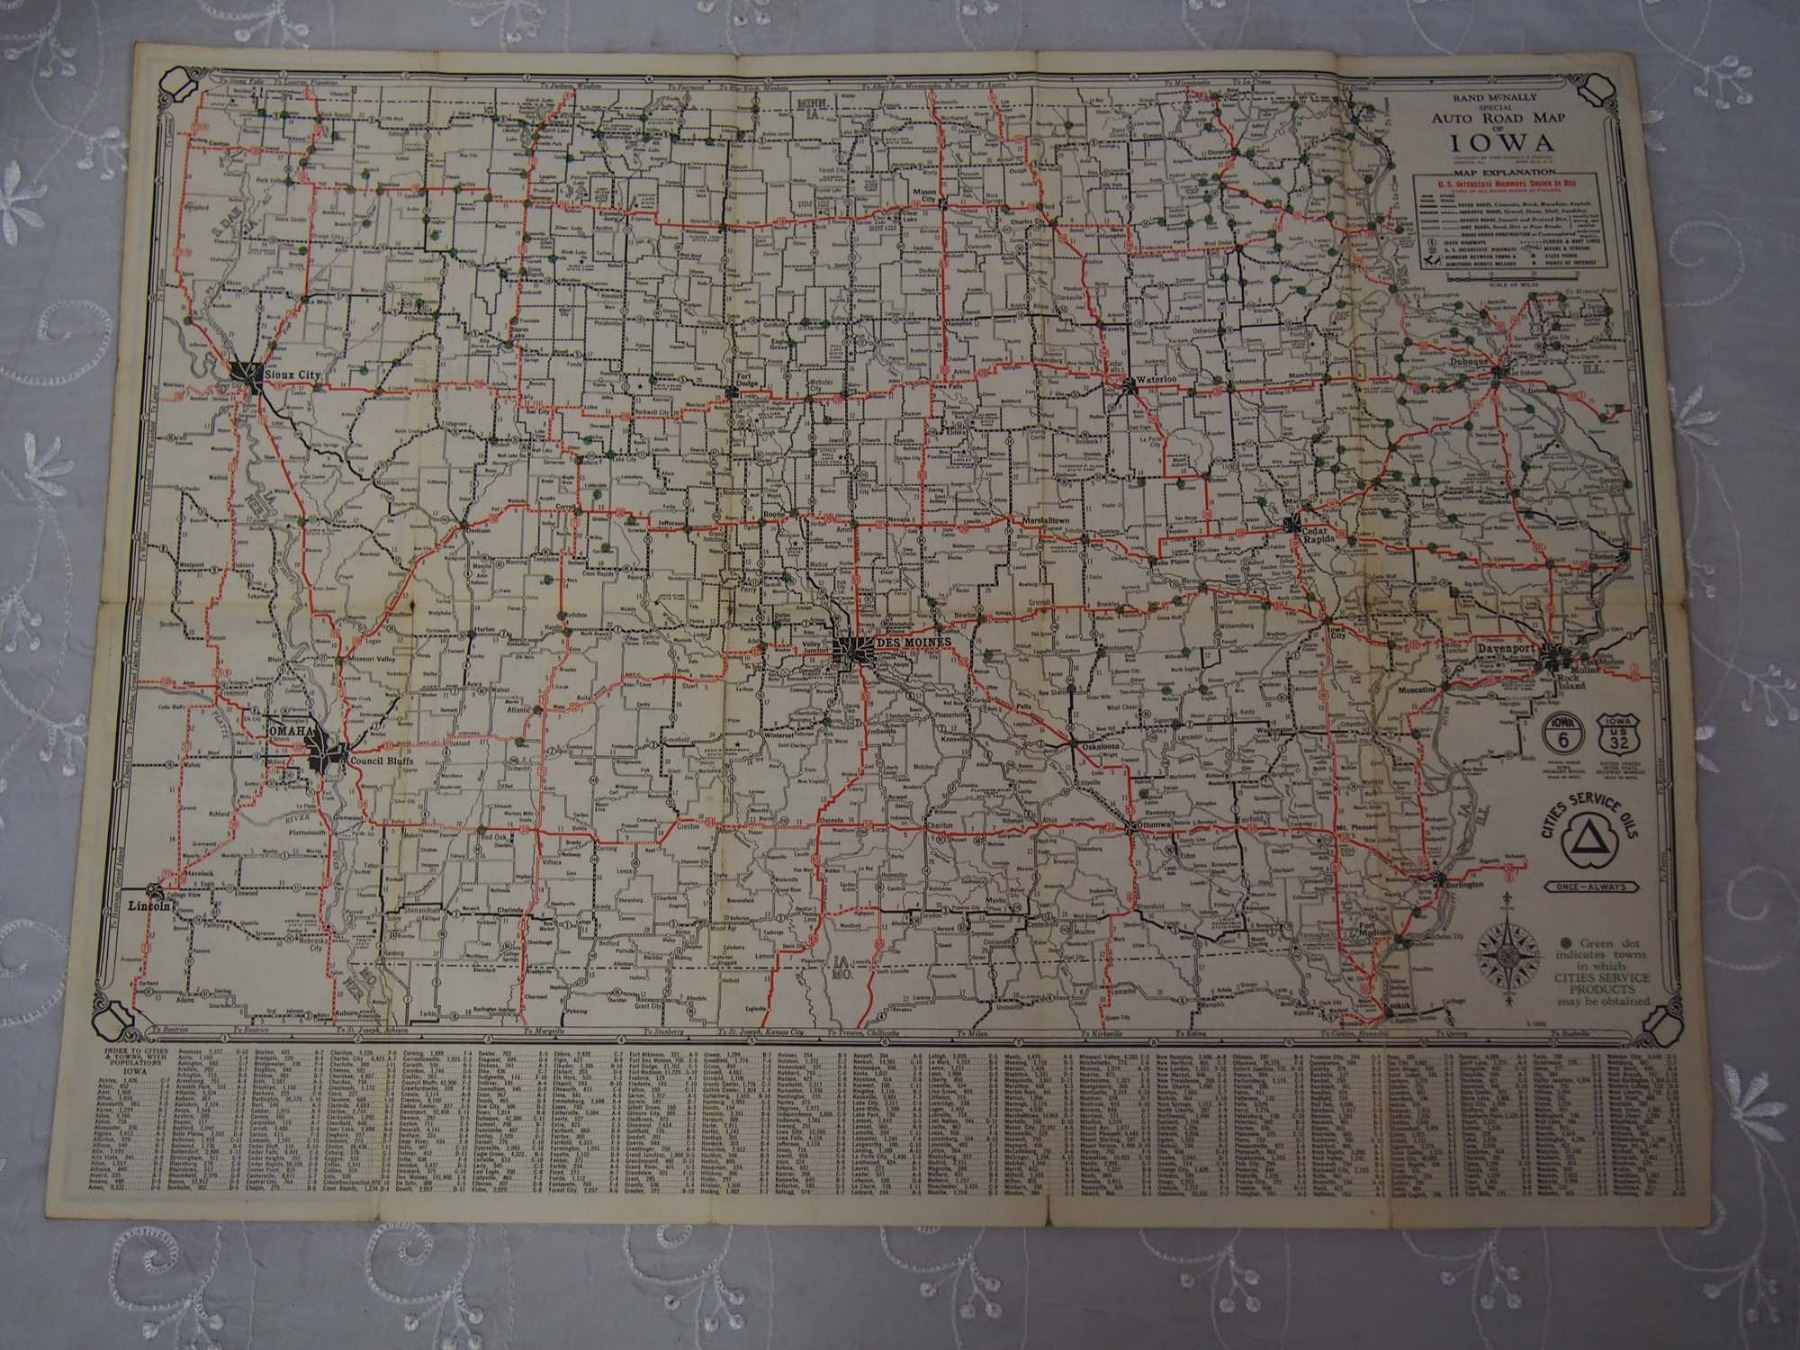 1930 Imperial Oil Road Map, Iowa Oil Co  Road Map & White Rose Road Map